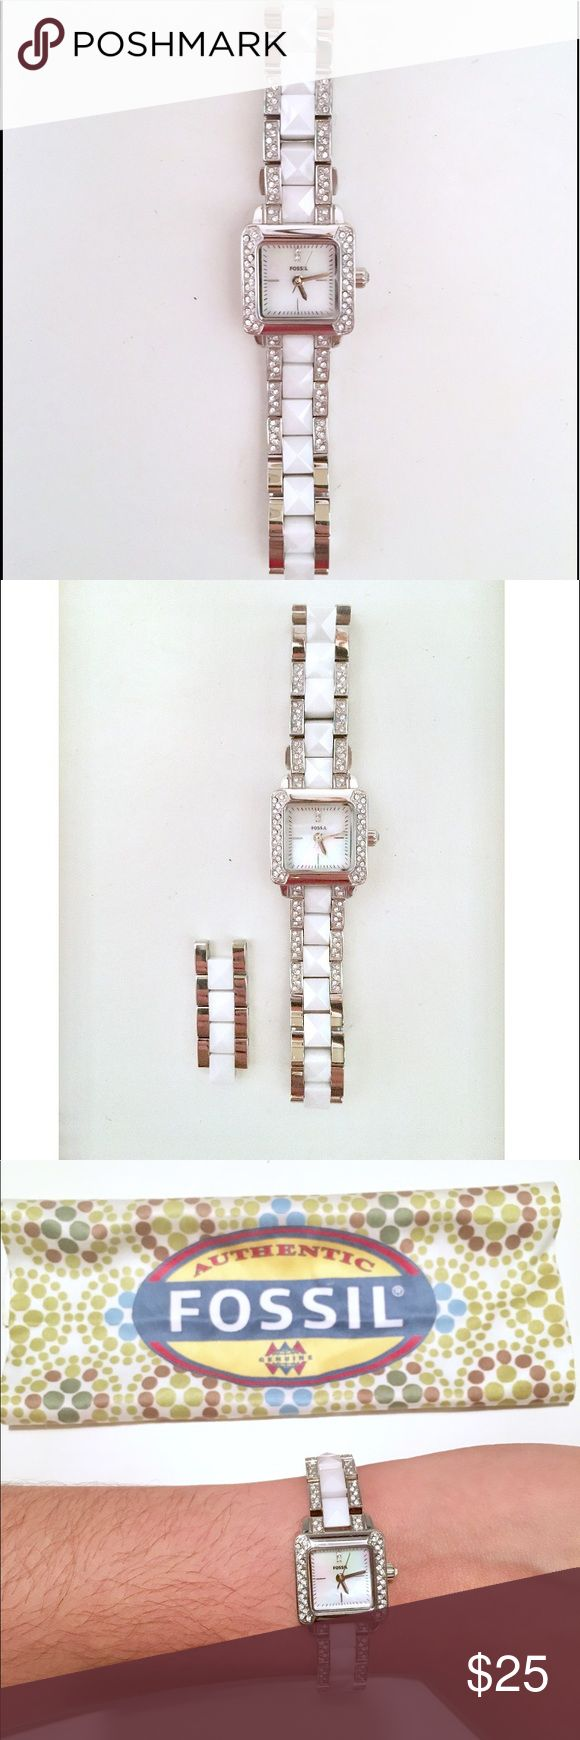 White Fossil Watch with Extension Piece White women's Fossil watch in excellent condition with extension piece and cleaning cloth. Fossil Accessories Watches